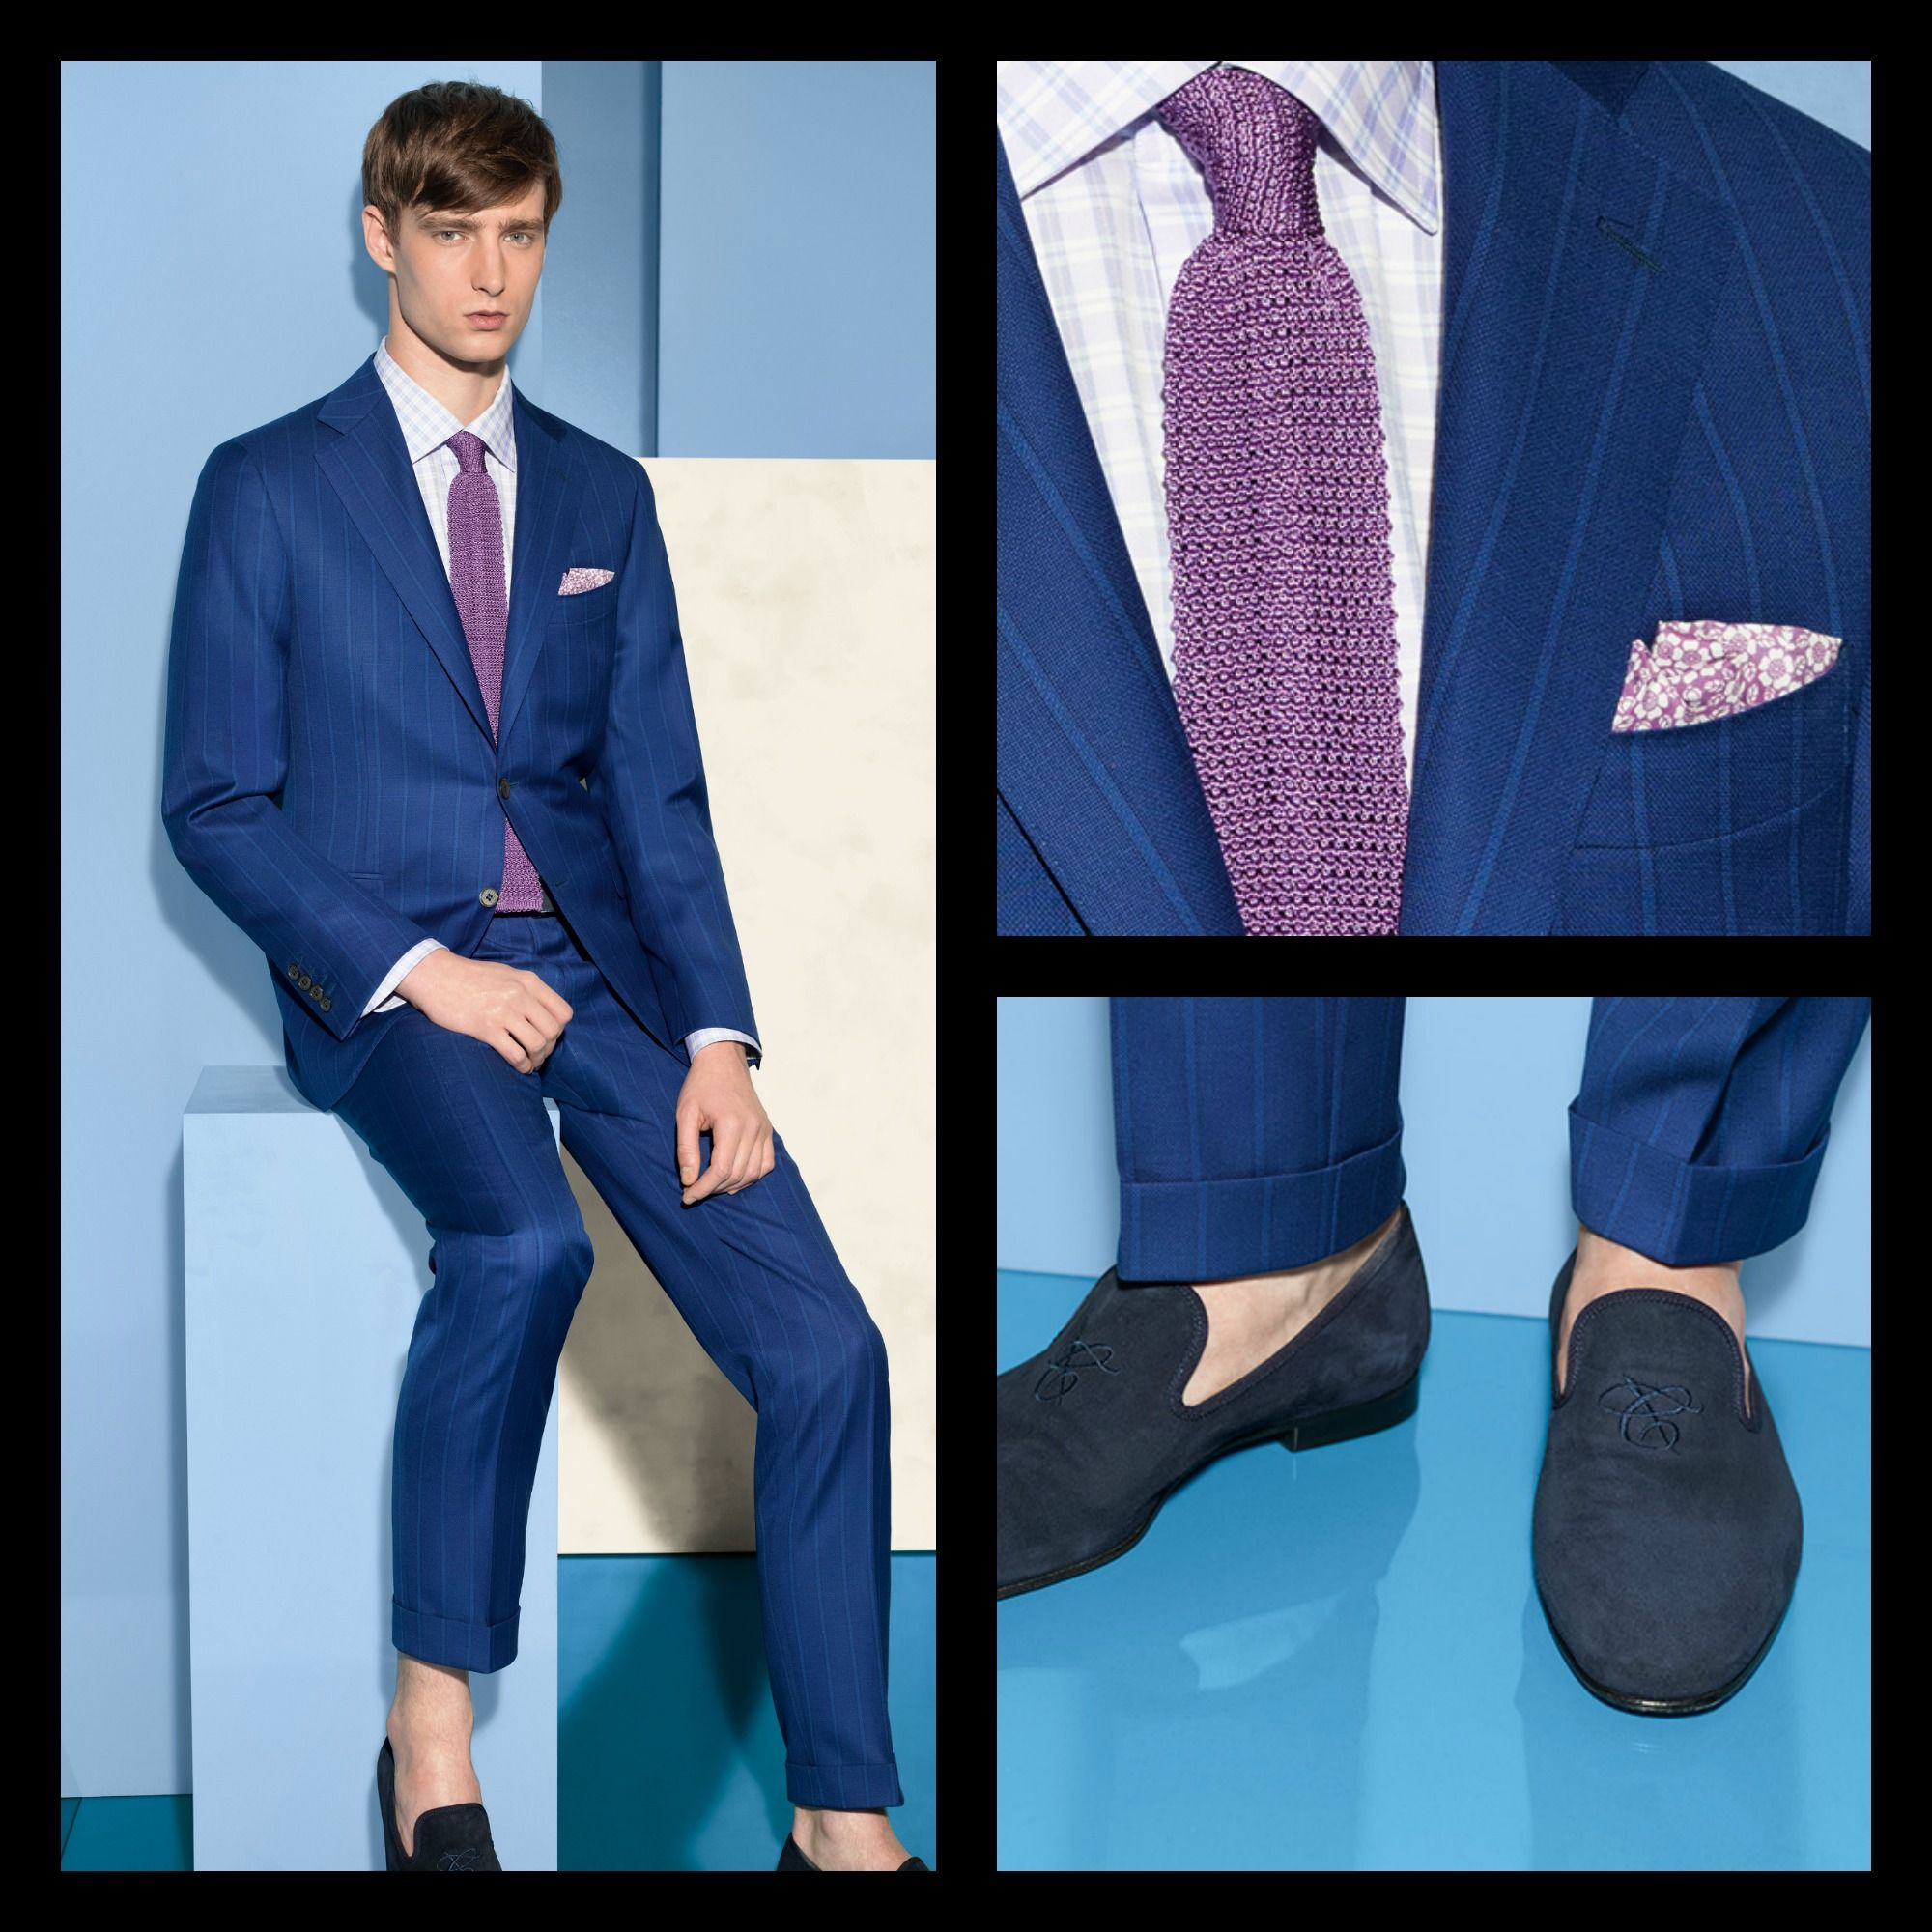 Elegance is an art form, all about finding the perfect balance between personal style, tradition and craftsmanship. Explore the exclusive look #menswear #suit #fashion #style #SS15 #blue